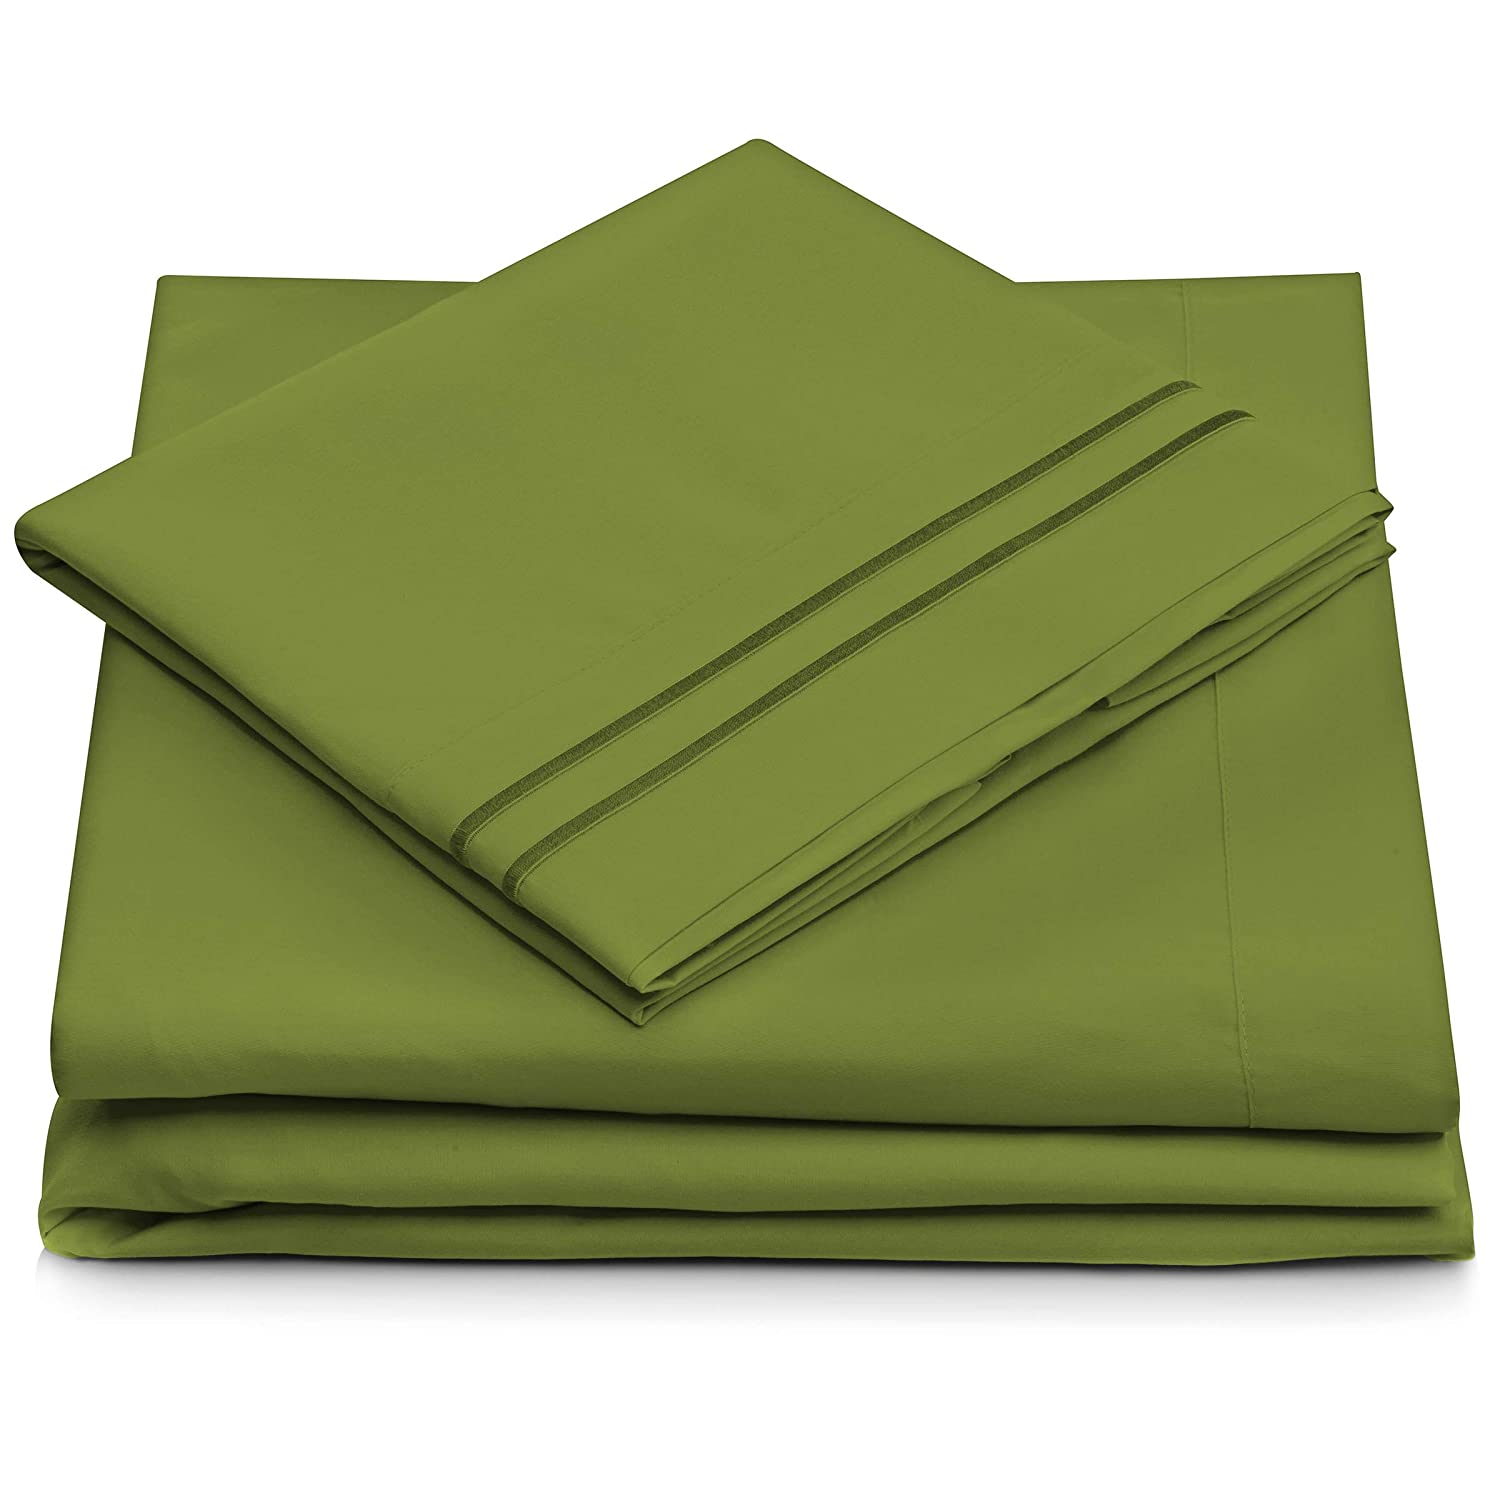 King Size Bed Sheets - Olive Green Luxury Sheet Set - Deep Pocket - Super Soft Hotel Bedding - Cool & Wrinkle Free - 1 Fitted, 1 Flat, 2 Pillow Cases - Dark Green King Sheets - 4 Piece